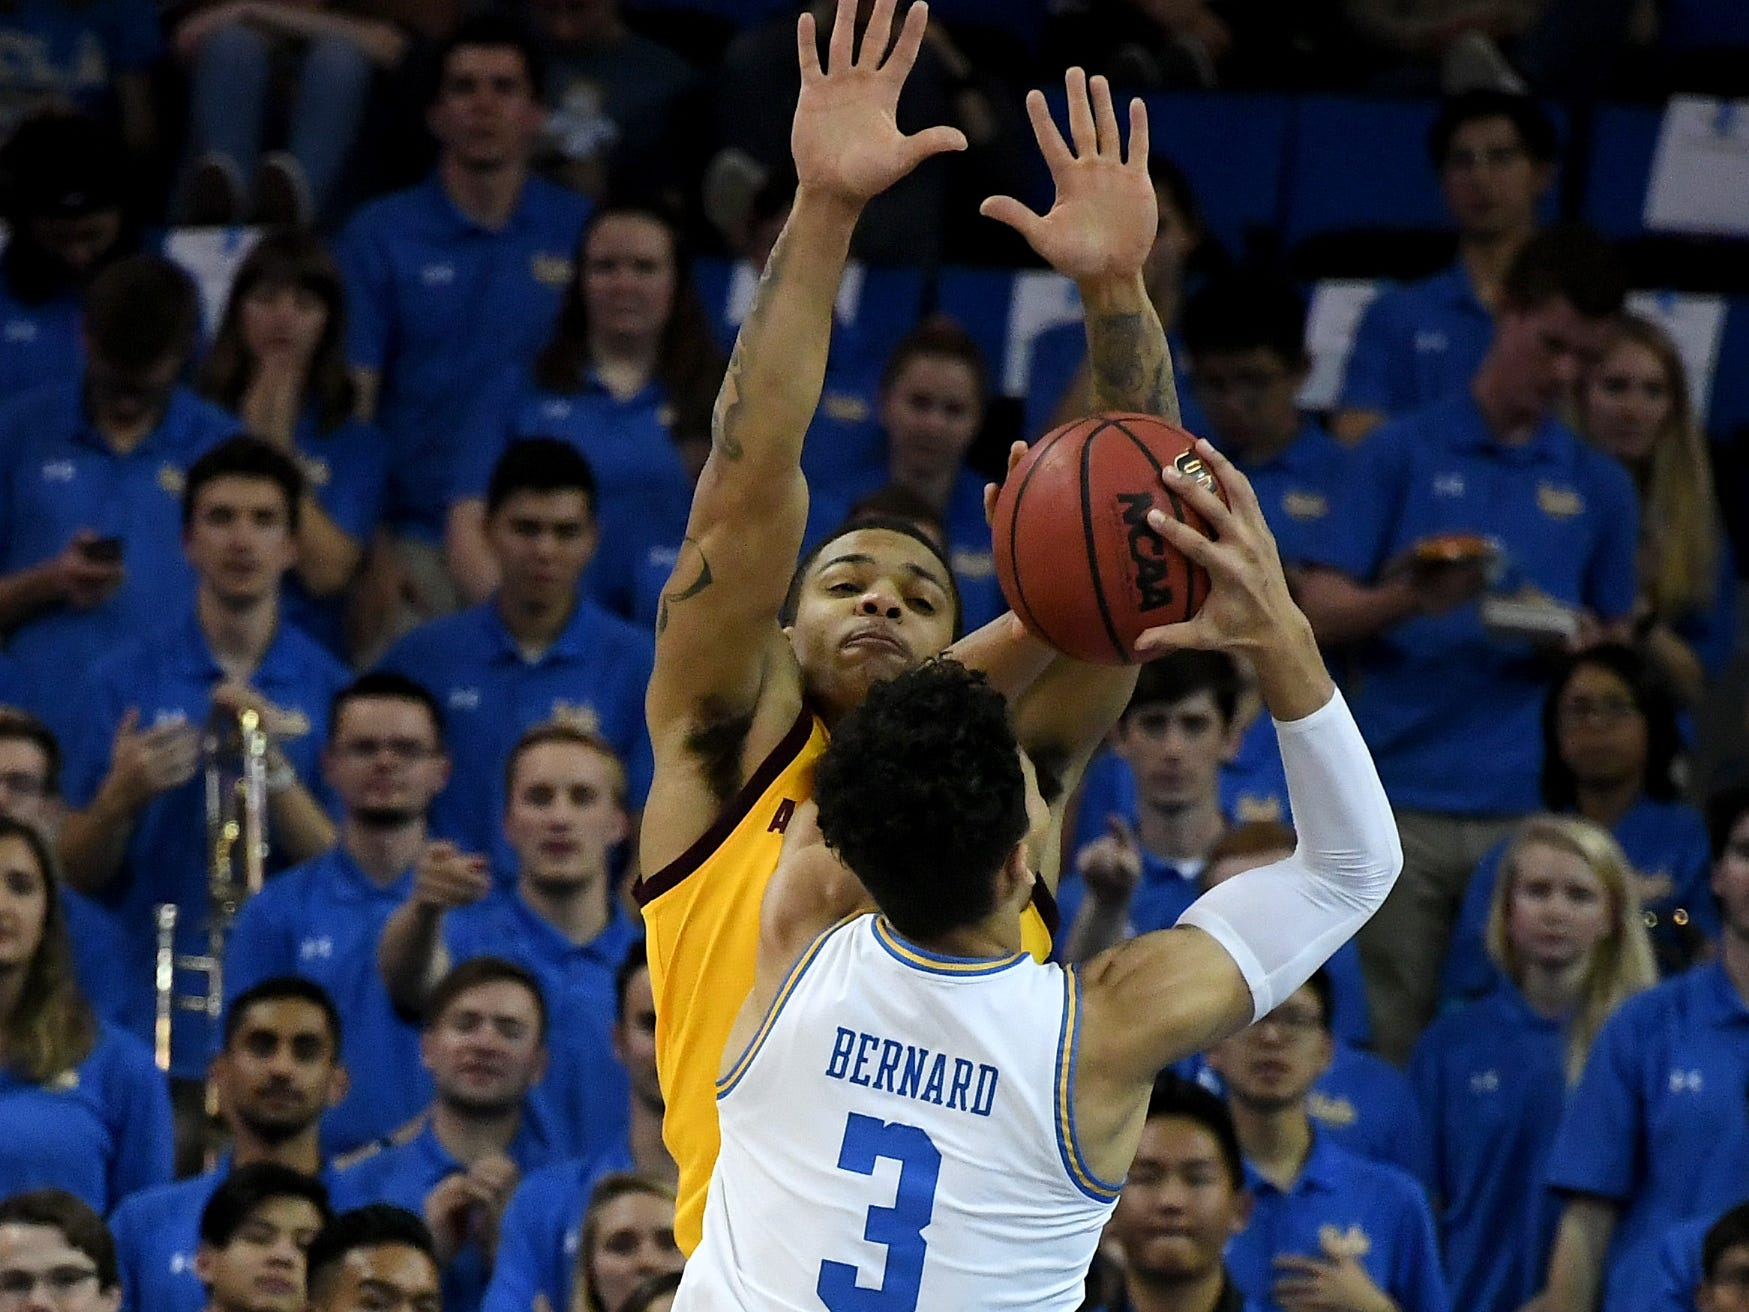 Jan 24, 2019; Los Angeles, CA, USA; UCLA Bruins guard Jules Bernard (3) shoots against Arizona State Sun Devils guard Rob Edwards (facing camera) during the first half at Pauley Pavilion. Mandatory Credit: Richard Mackson-USA TODAY Sports